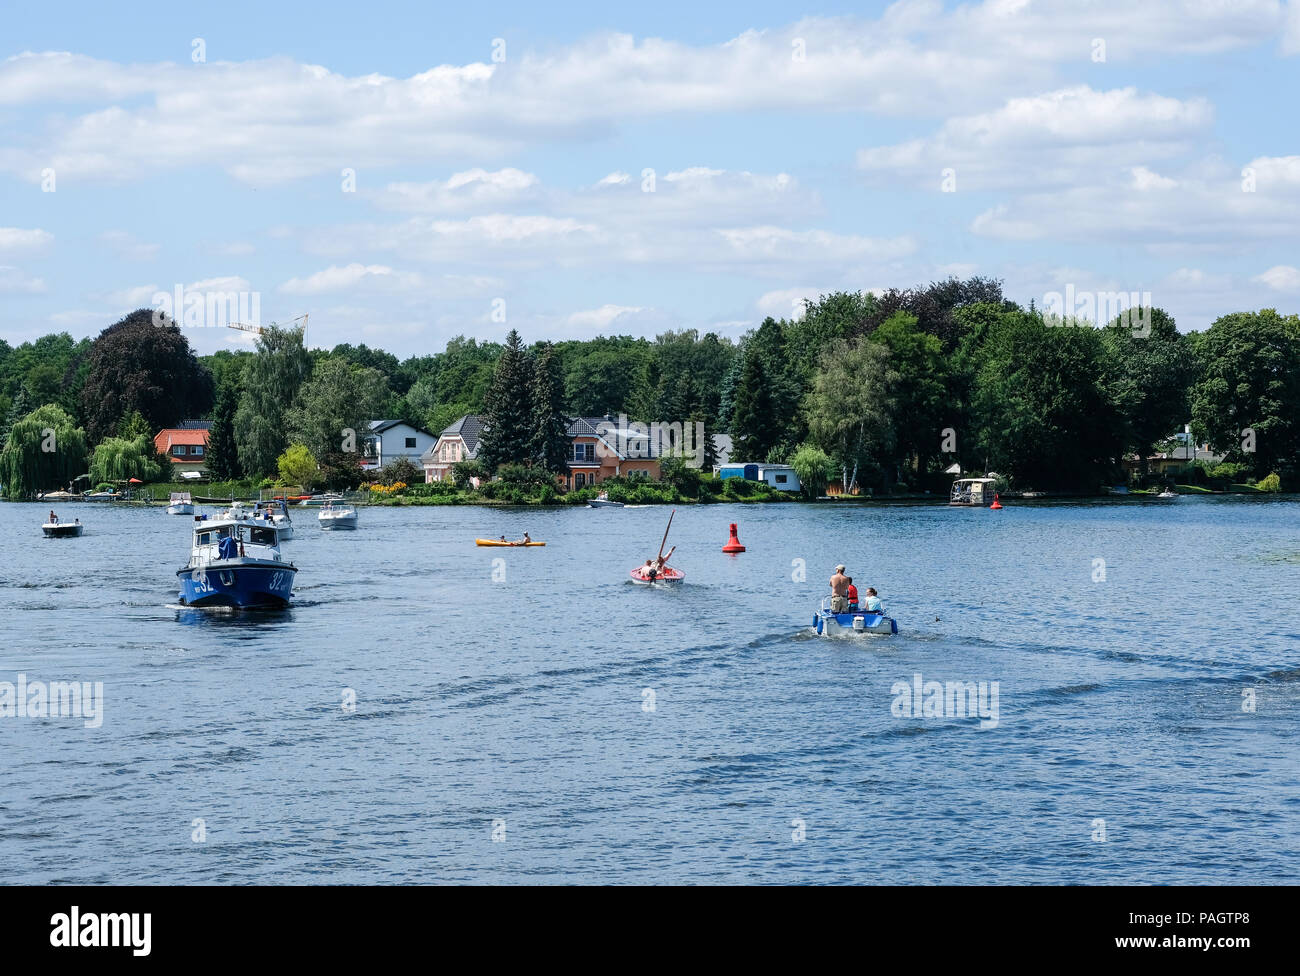 Berlin Germany 15th July 2018 Boats Cruise Around The Small How To Wire A Boat Mueggelsee Lake No Service Credit Jens Kalaene Dpa Zentralbild Alamy Live News